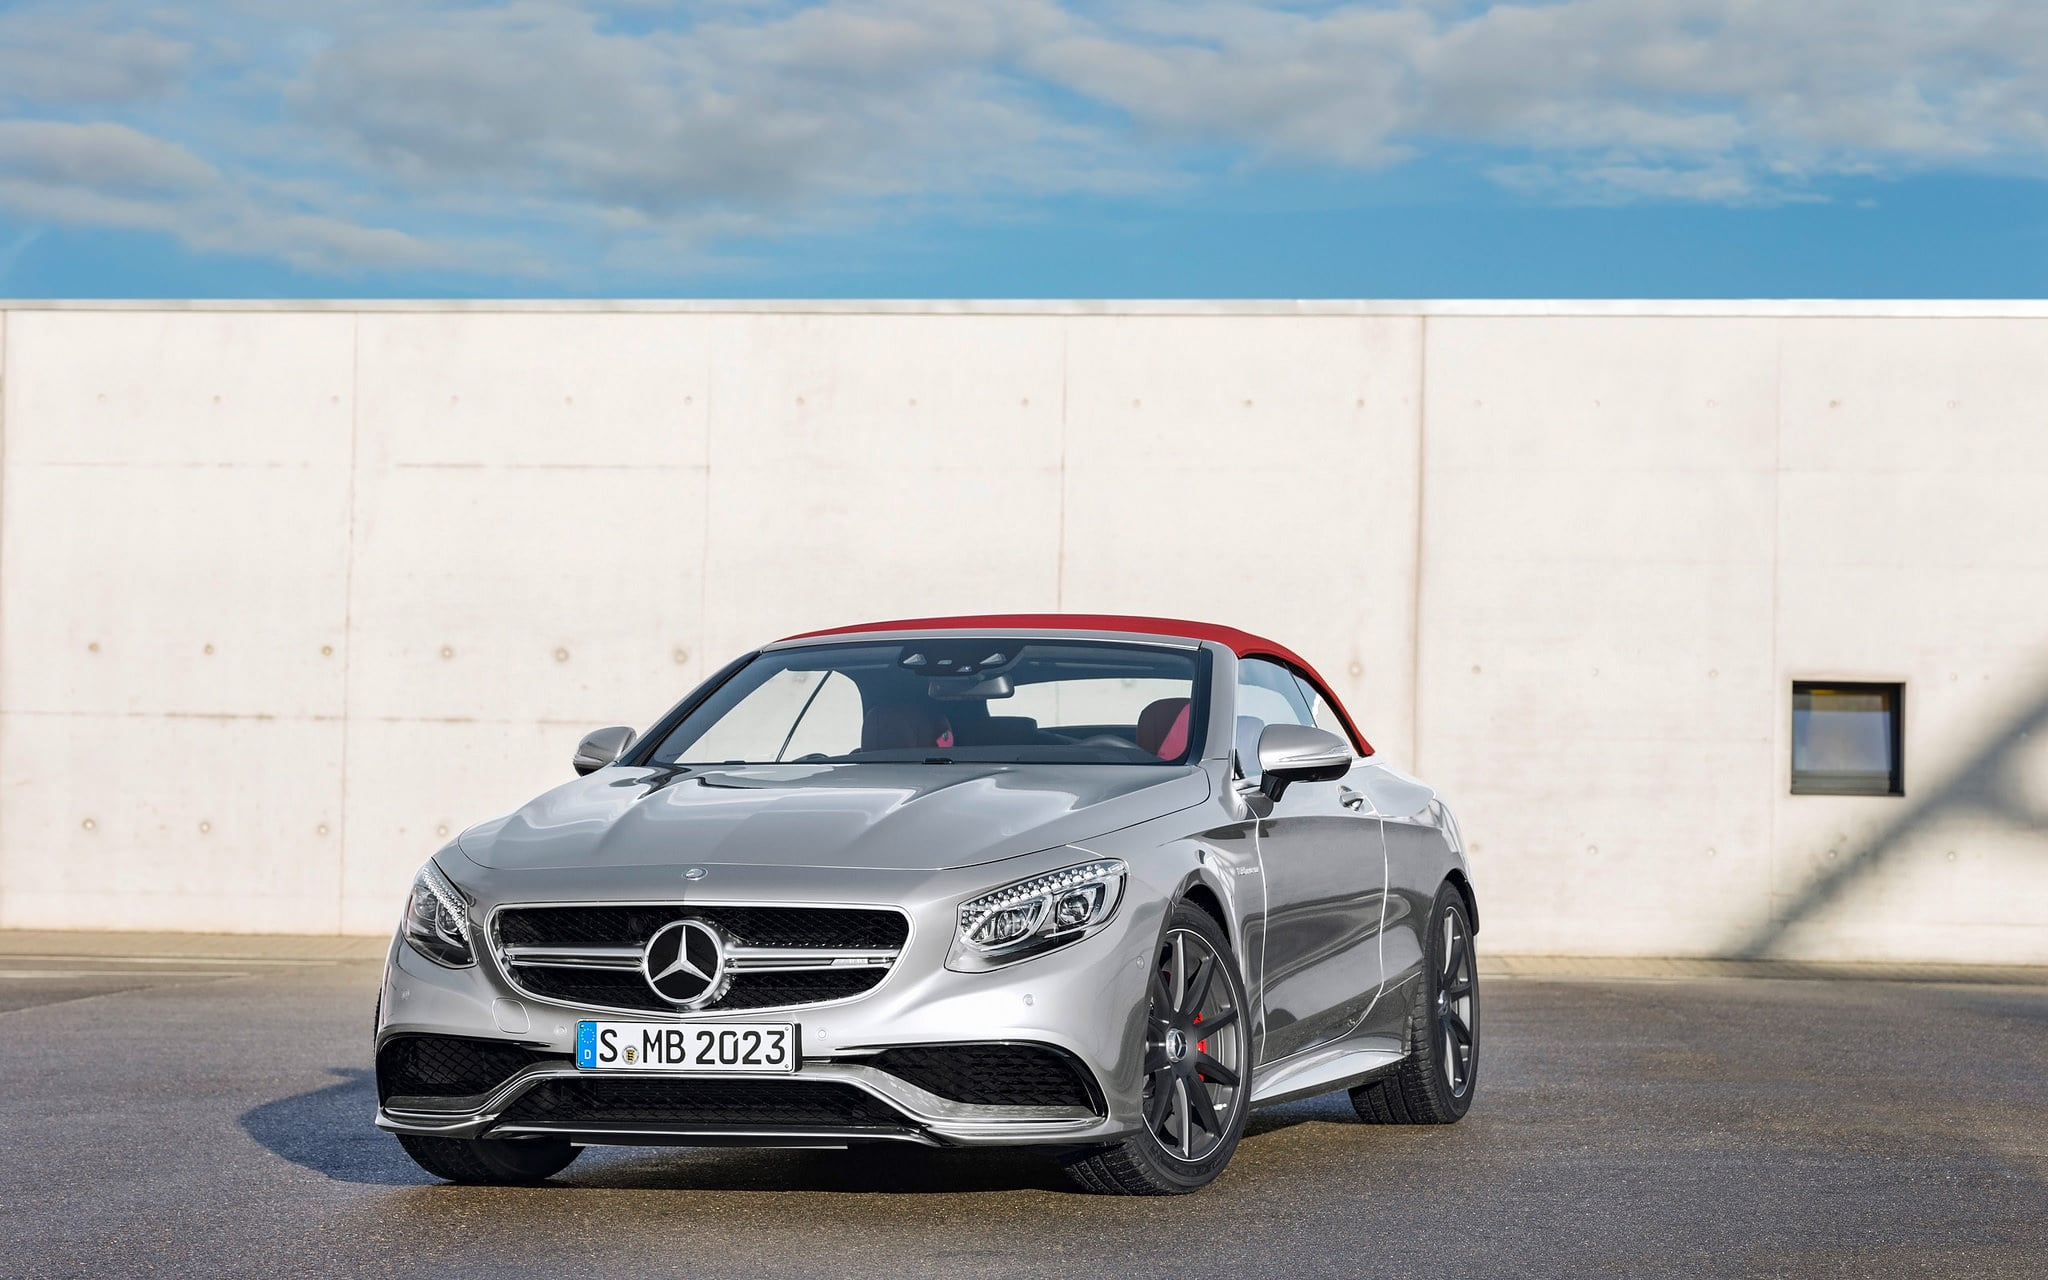 2016 mercedes amg s63 cabriolet wallpapers hd. Black Bedroom Furniture Sets. Home Design Ideas